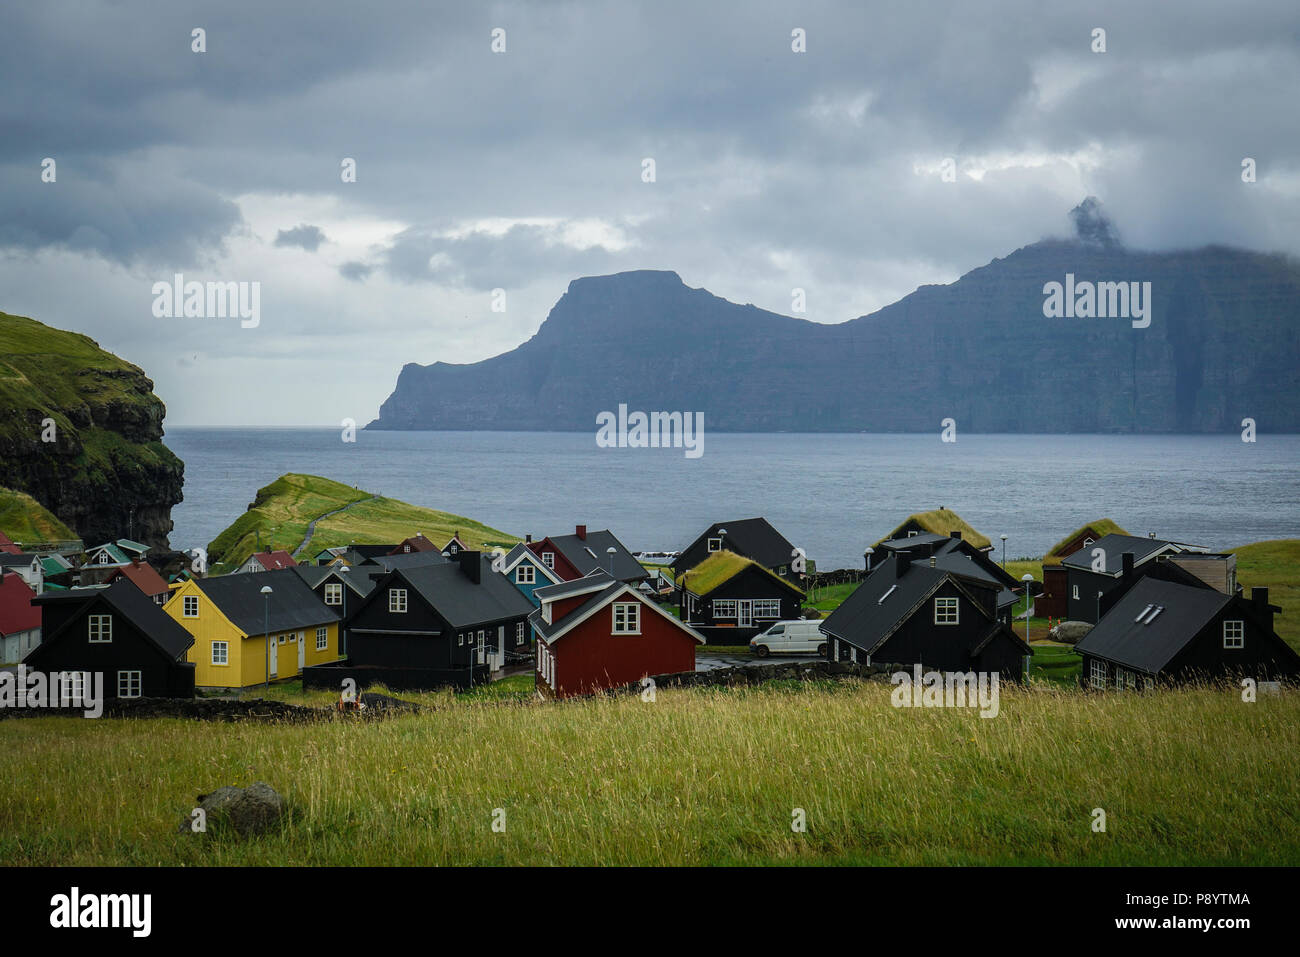 Faroe Islands Holiday Homes High Resolution Stock Photography And Images Alamy